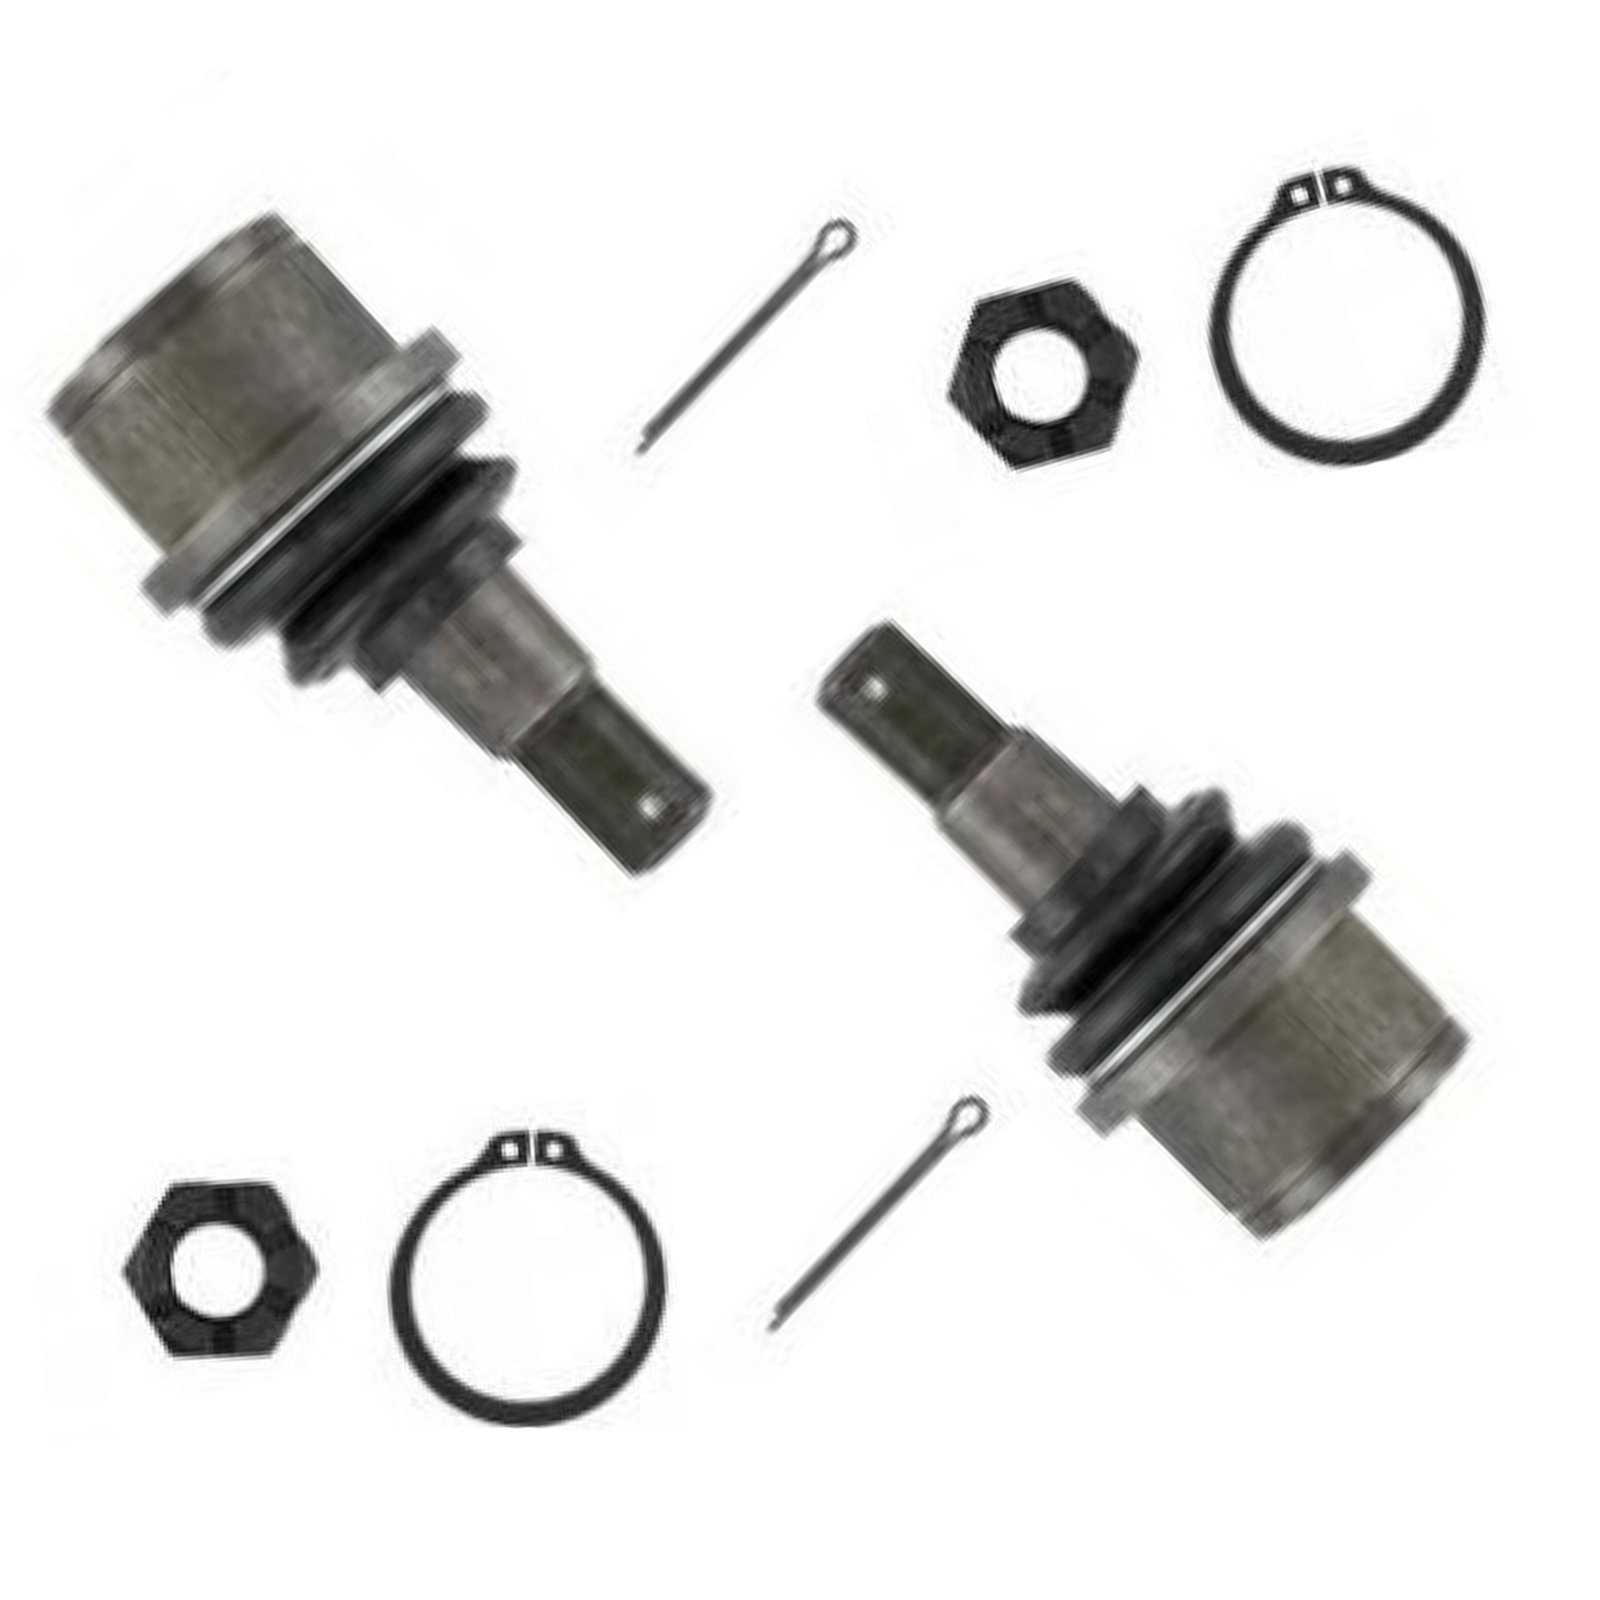 Detroit Axle - Both (2) Brand New Driver & Passenger Side Front Lower Ball Joint - 2wd Ram 2500-3500 - 10-Year Warranty